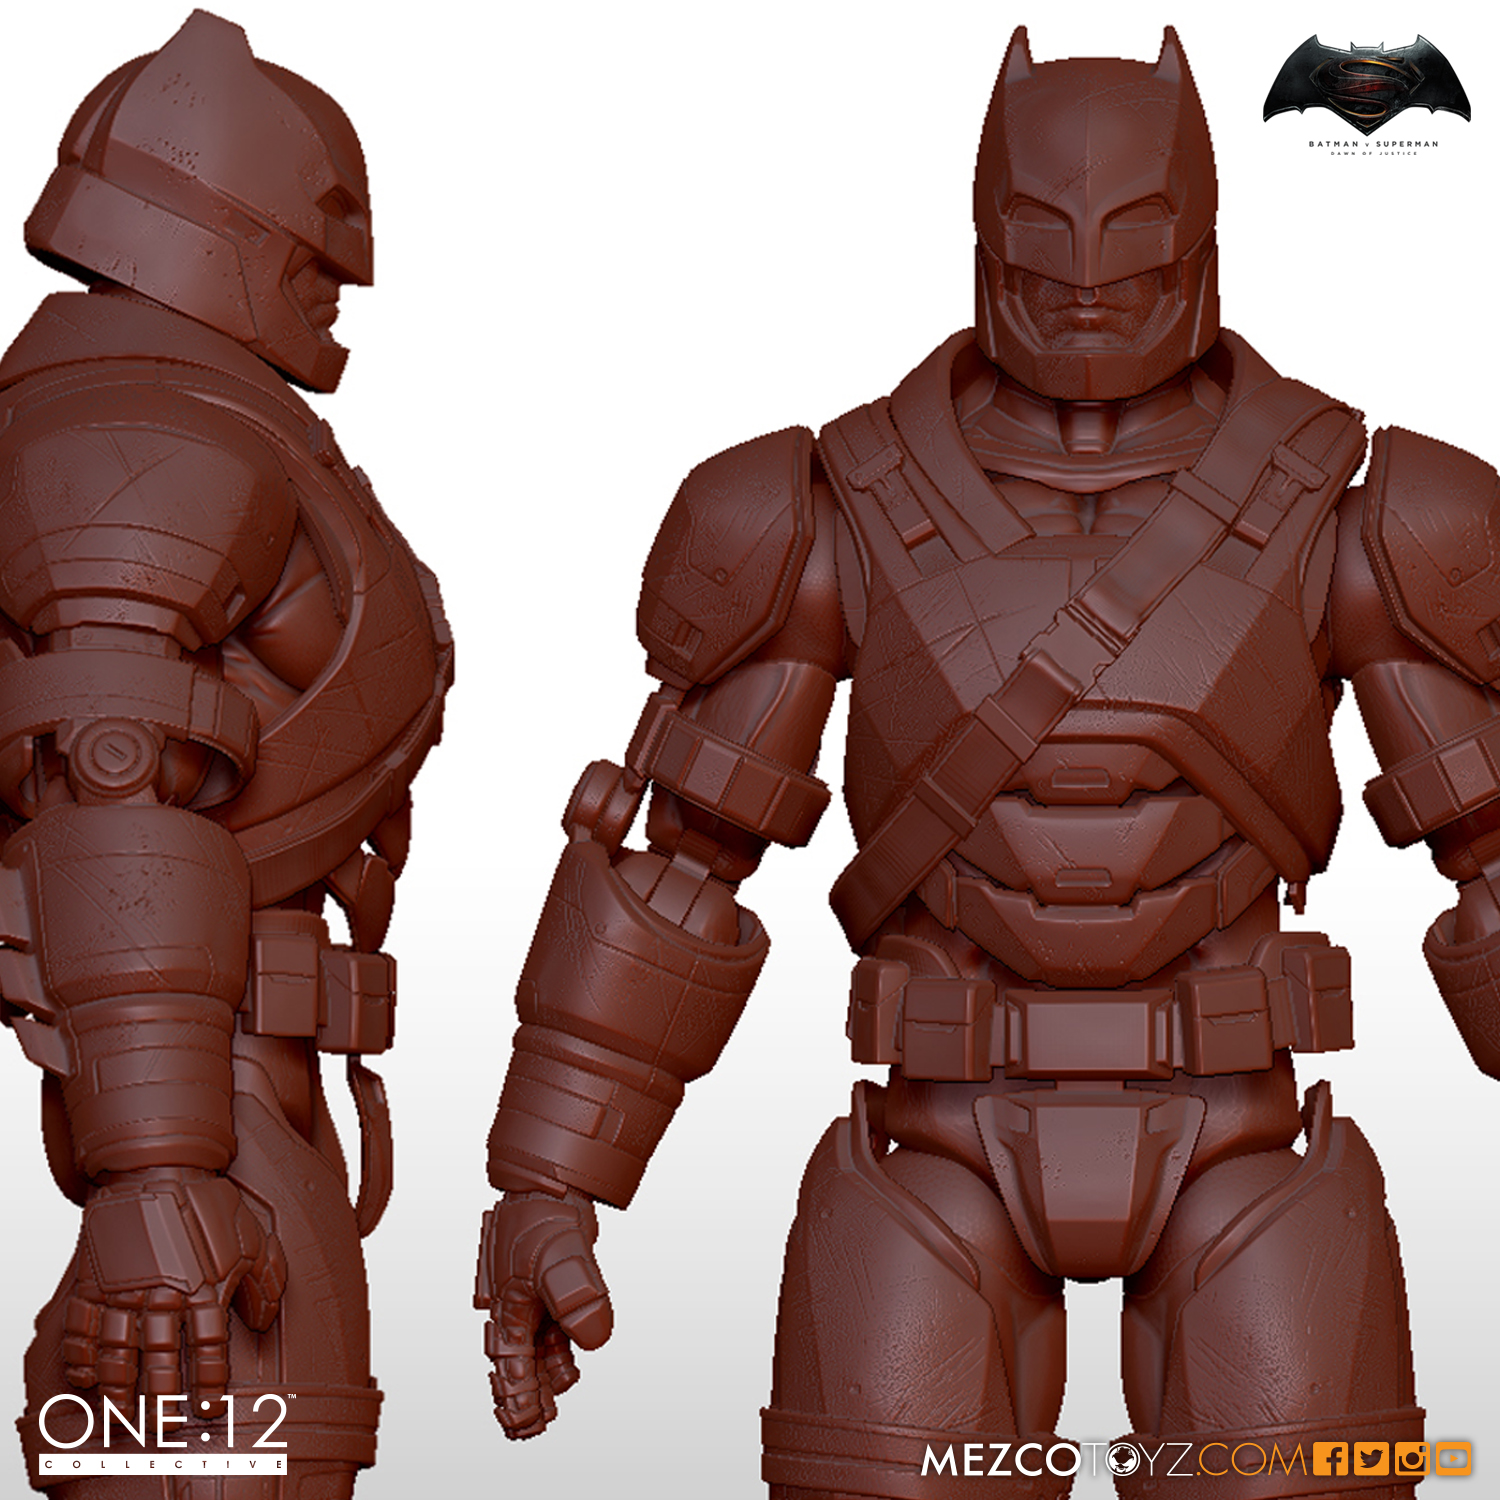 One:12 Collective Dawn of Justice Armored Batman